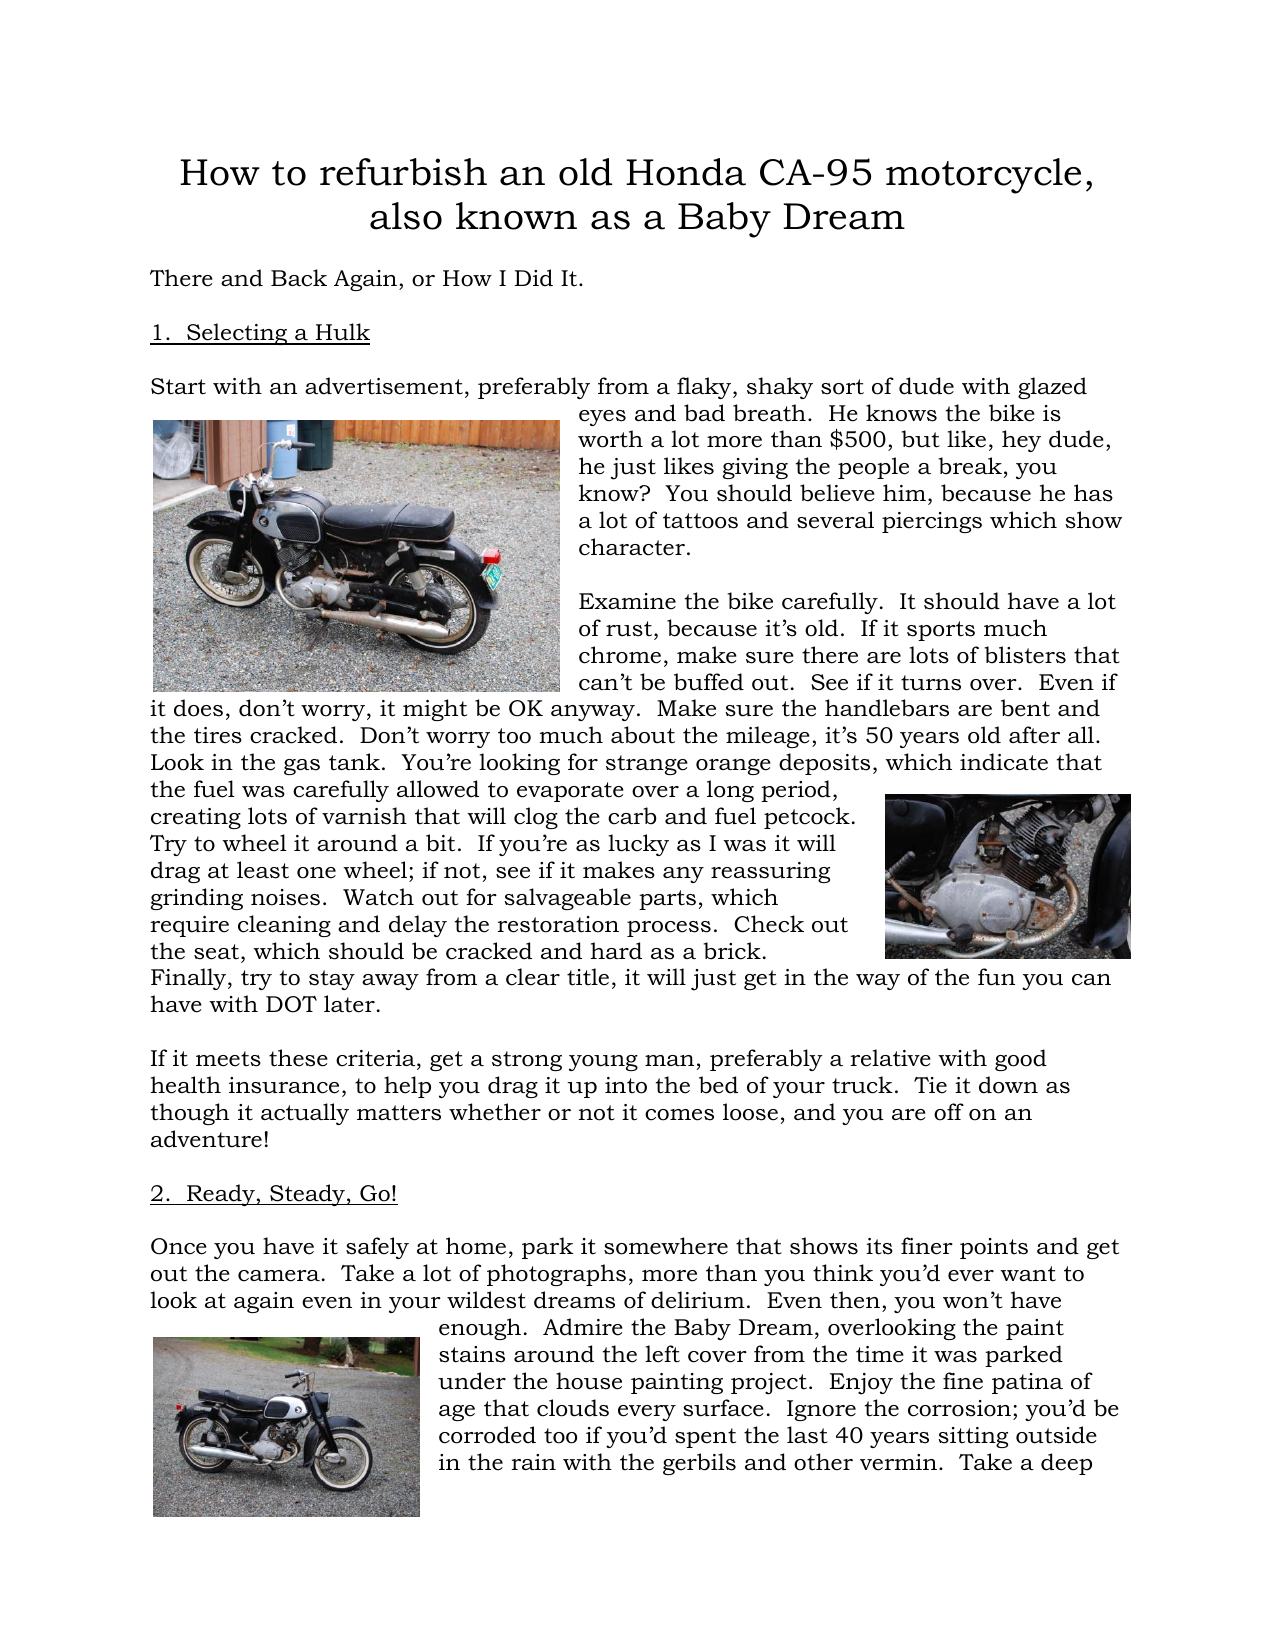 How To Refurbish An Old Honda Ca 95 Motorcycle Also Known As A Ca95 Wiring